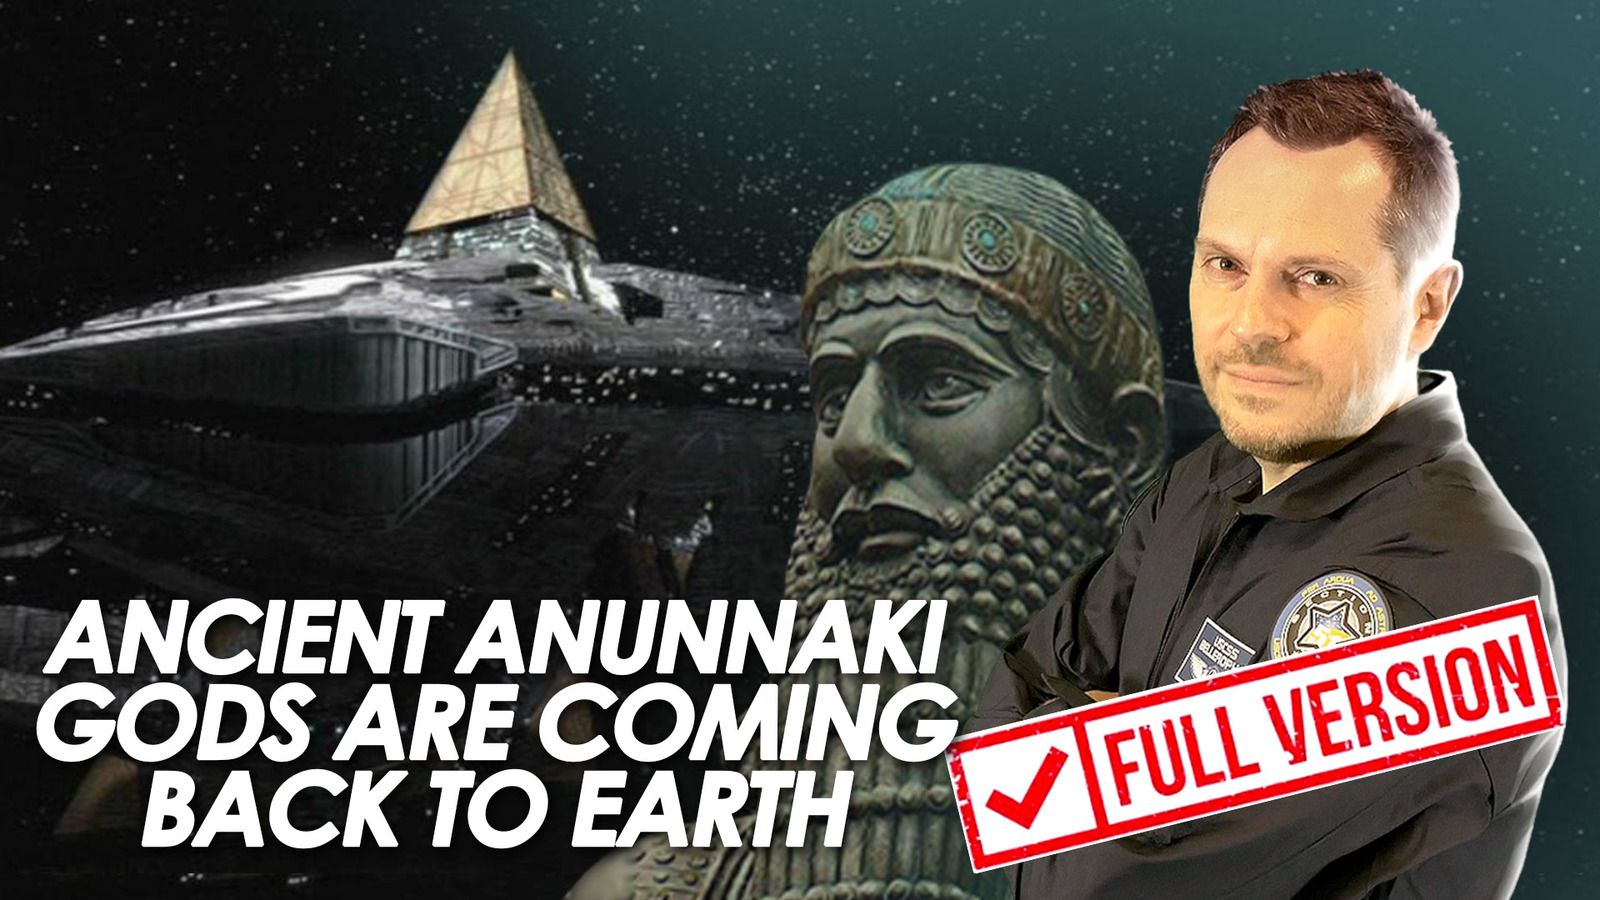 👽 The Ancient Anunnaki Gods Are Coming Back To Earth - Pentagon Leak in Epic Interview